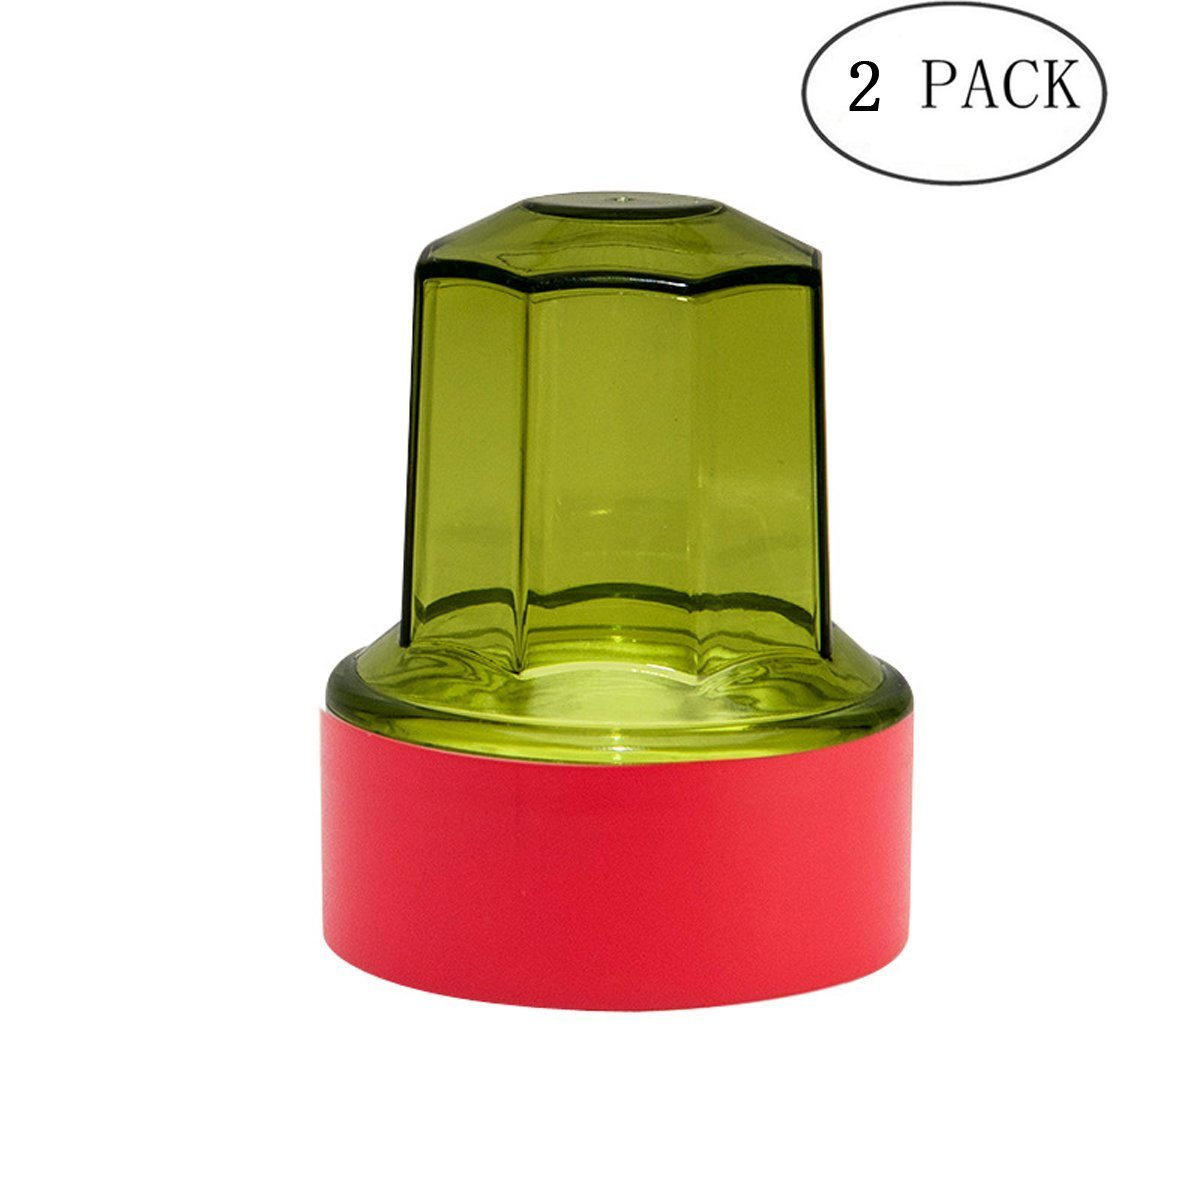 Popowbe Stamps Stamp boxes STAMP BOX WOOD Think More Transparent cow horn seal box Financial storage box chapter box seal box multifunction seal box round single Green